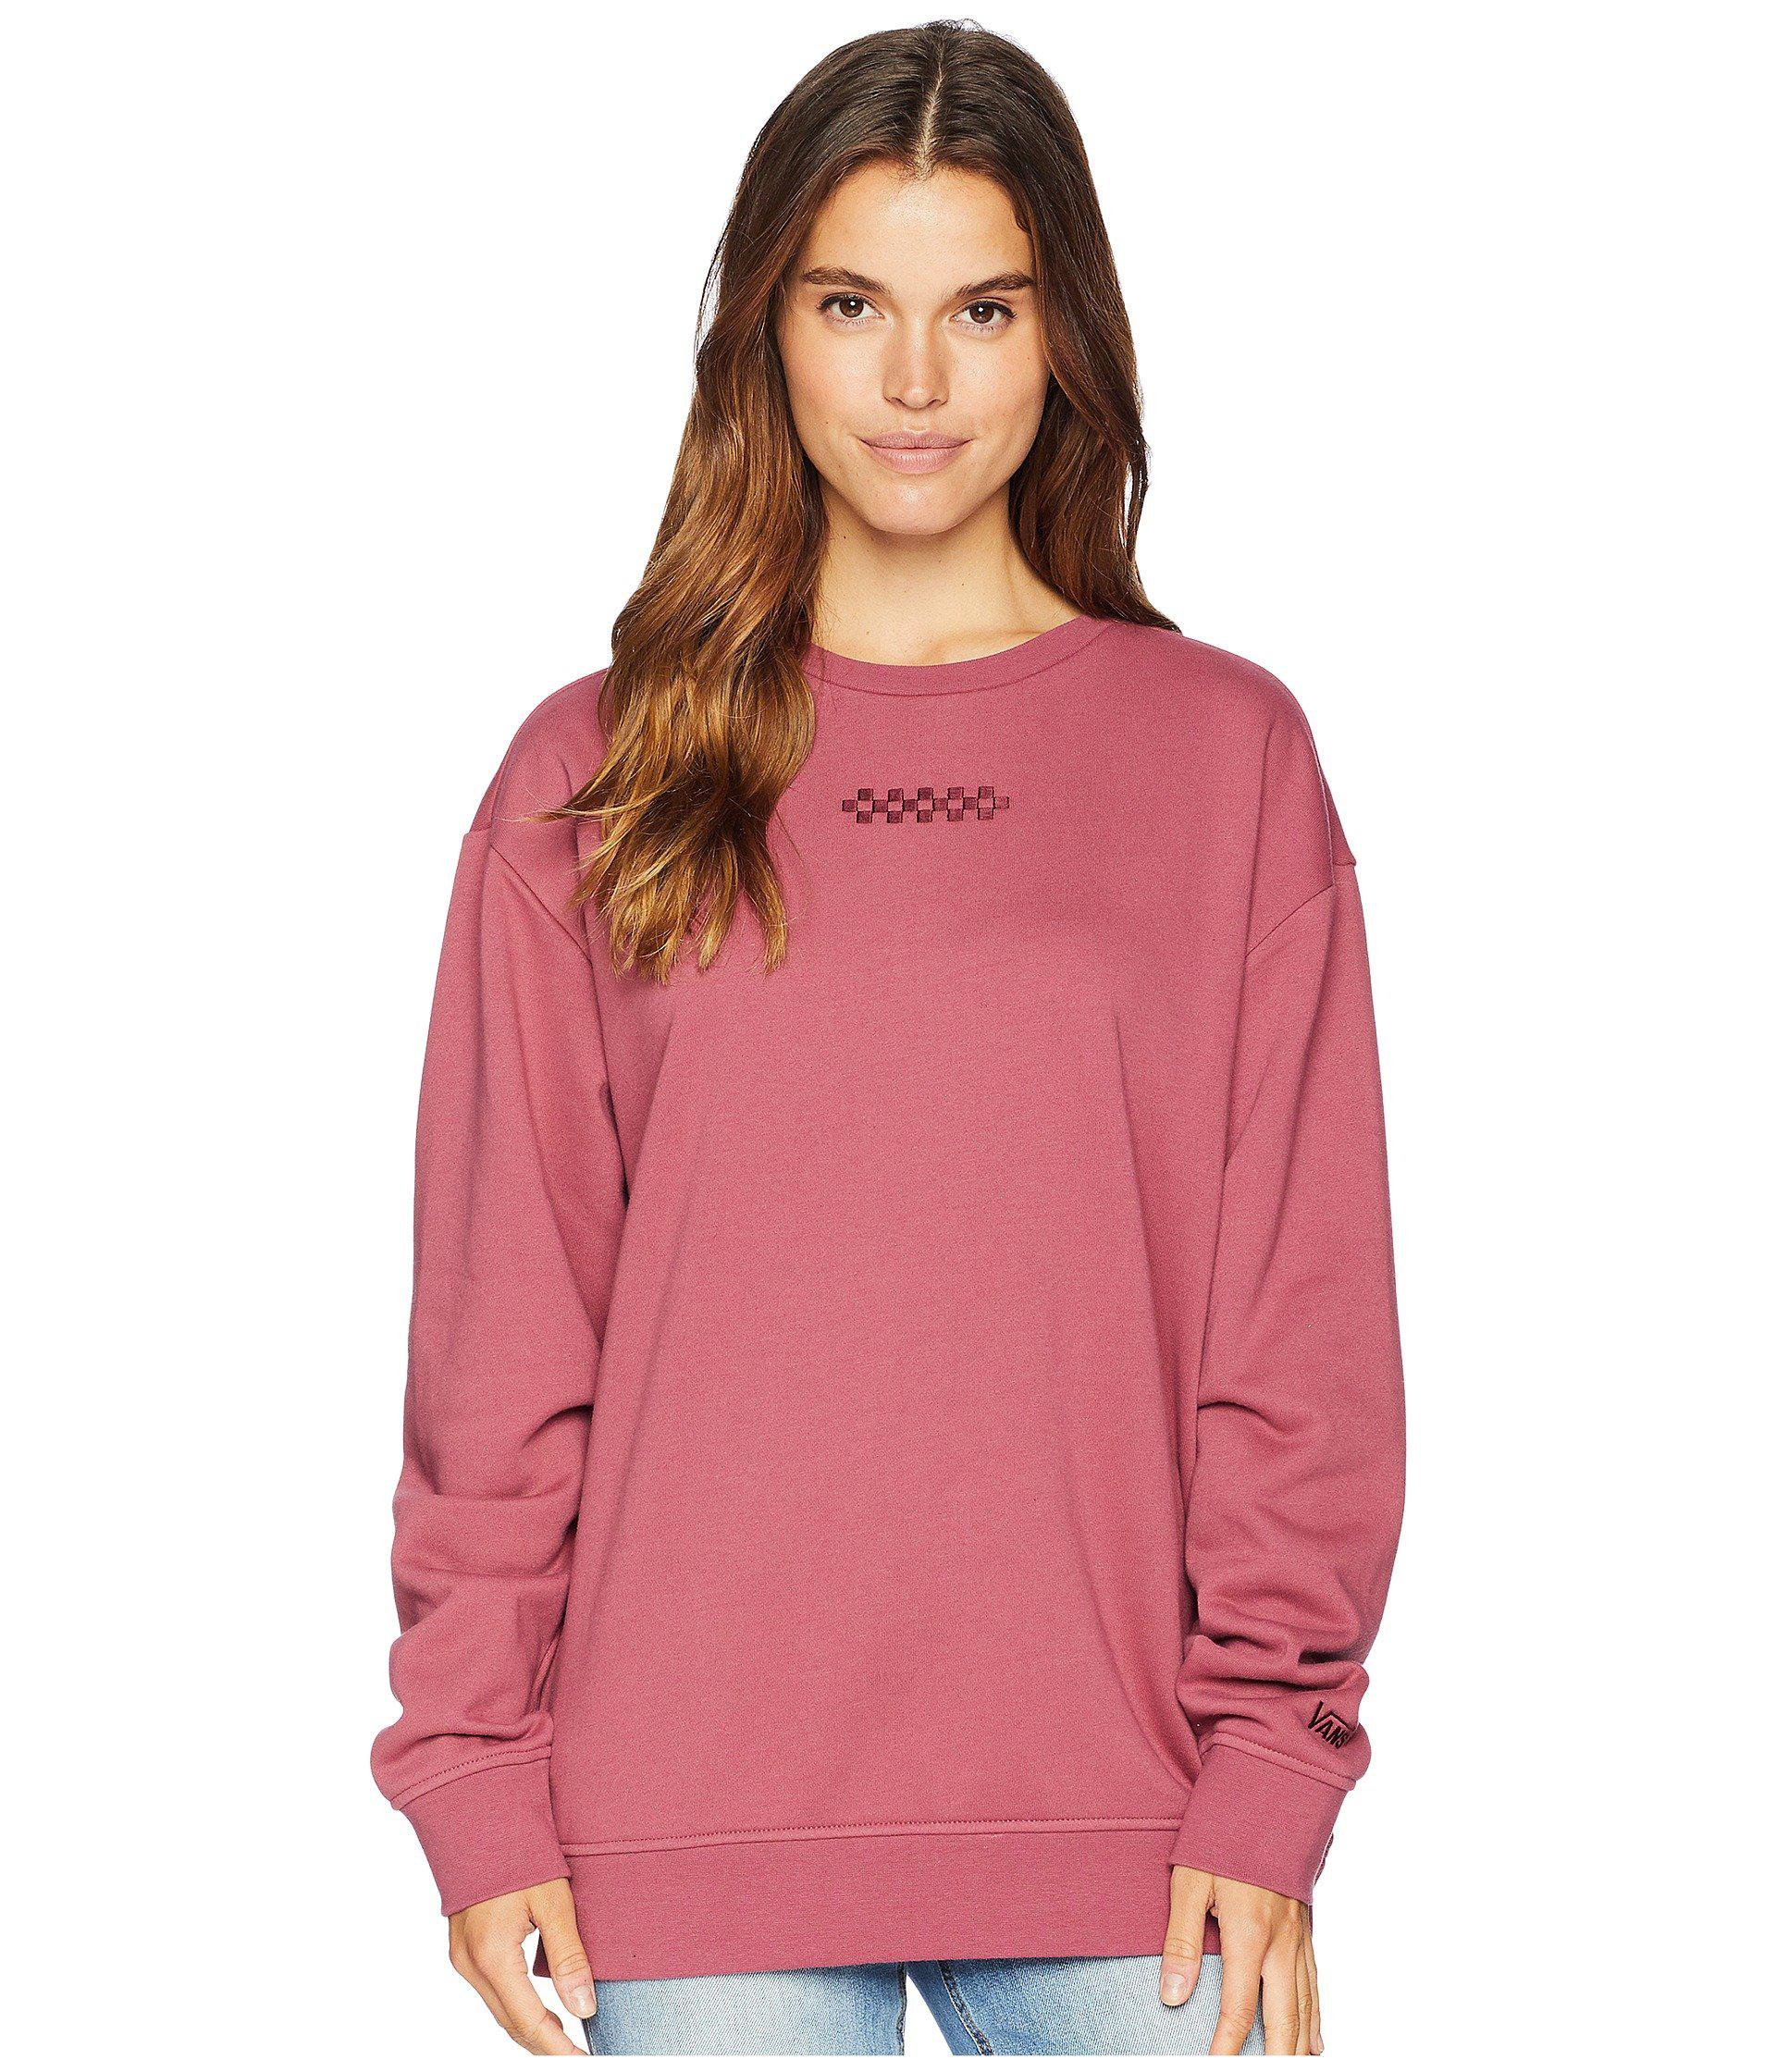 42b65b7c3f Lyst - Vans Overtime Crew (dry Rose) Women s Fleece in Pink